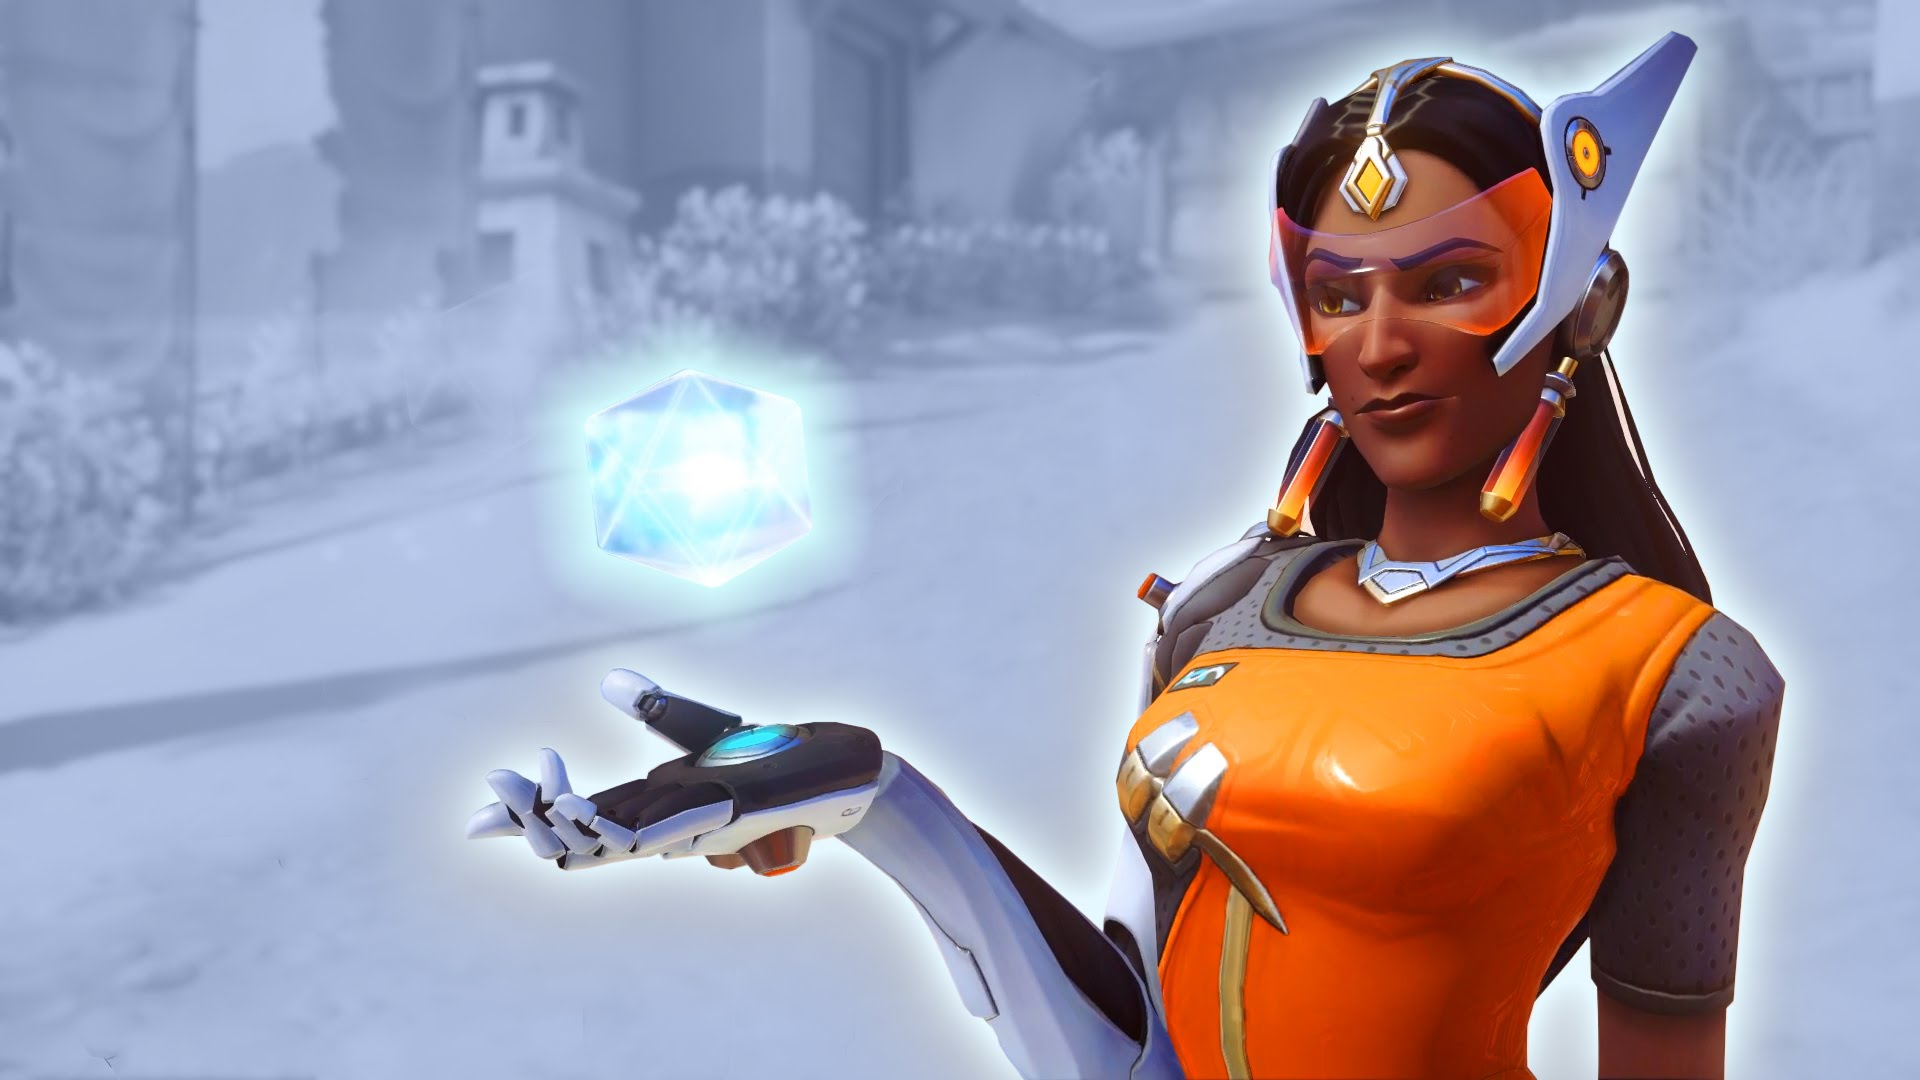 Overwatch : Symmetra Wallpaper